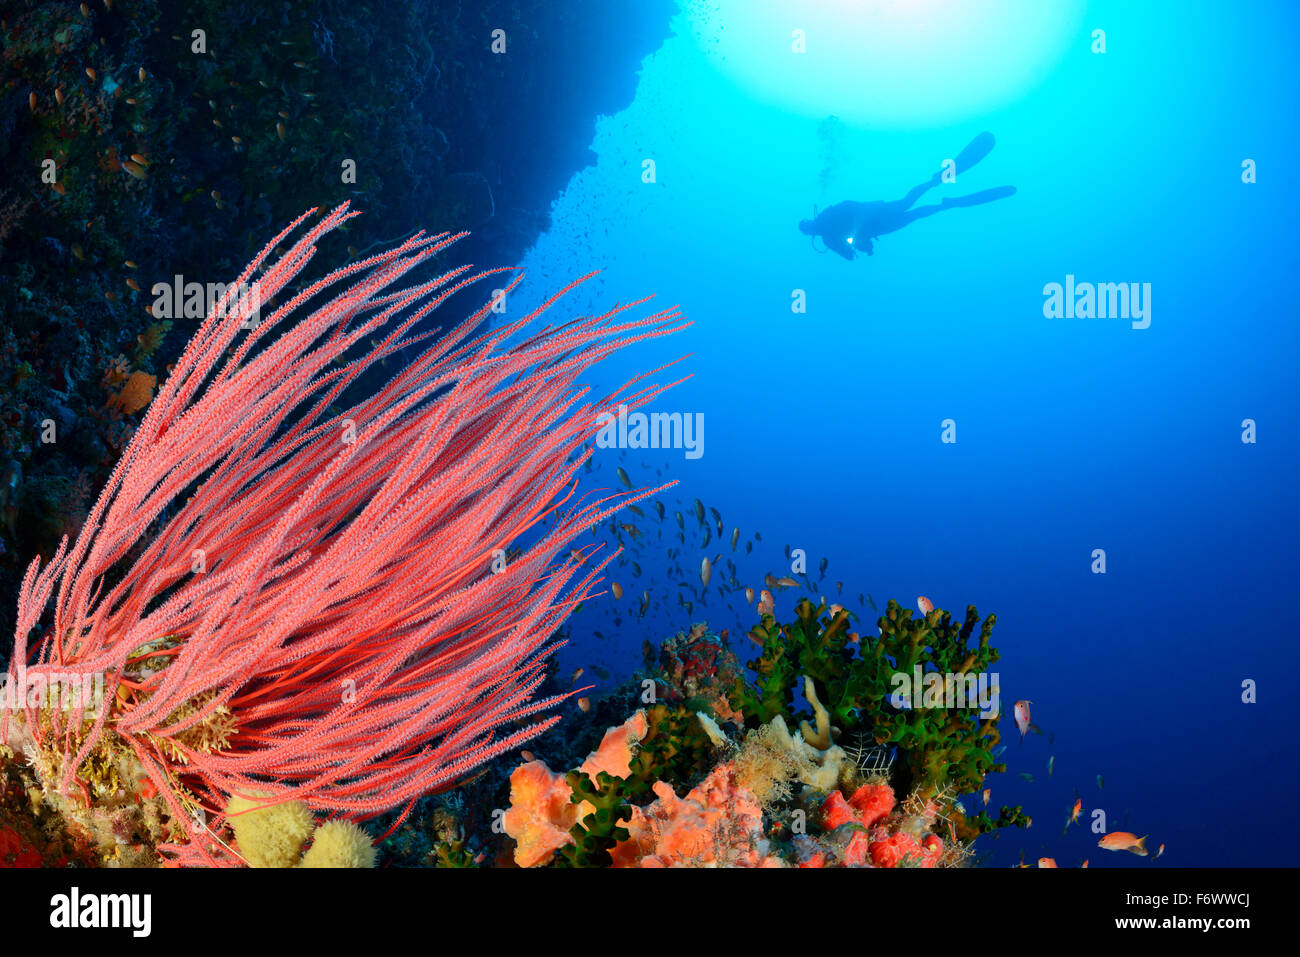 Ellisella cercidia, Coralreef with Sea Whip Coral and scuba diver, Alor, Indonesia, Pantarstrait, Indian Ocean Stock Photo